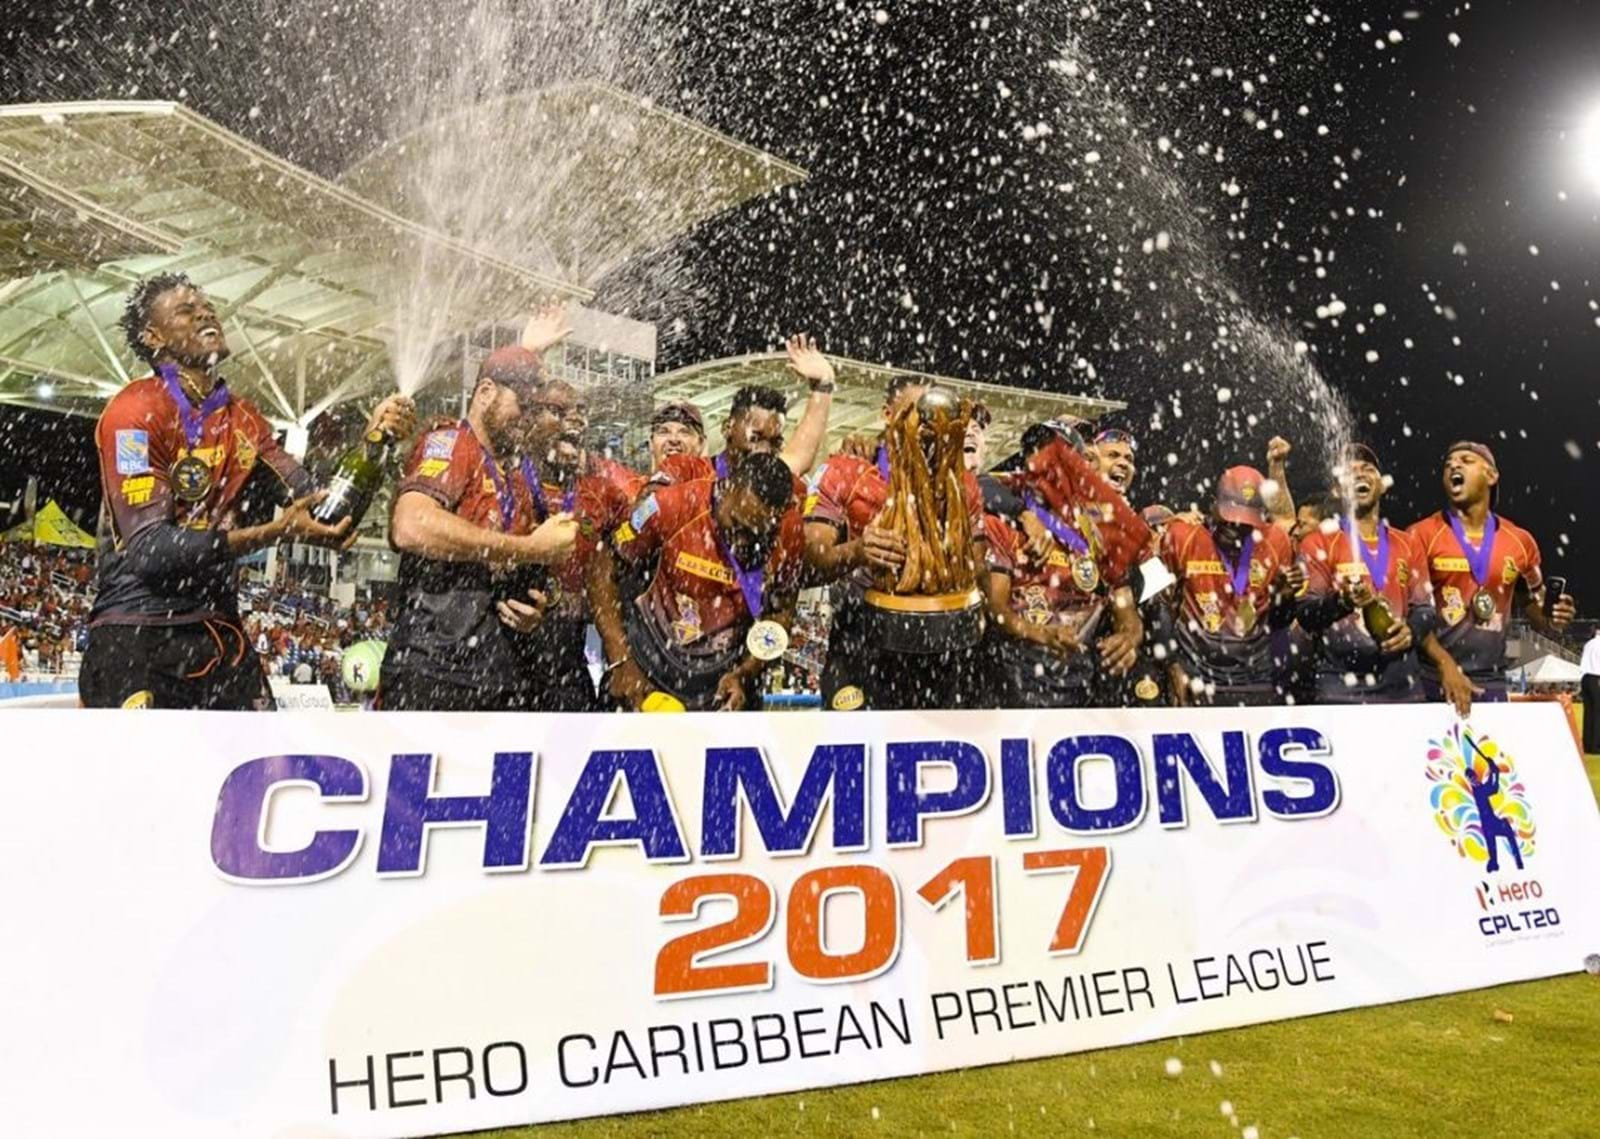 SUNSET+VINE WINS THREE YEAR CONTRACT FOR HERO CARIBBEAN PREMIER LEAGUE